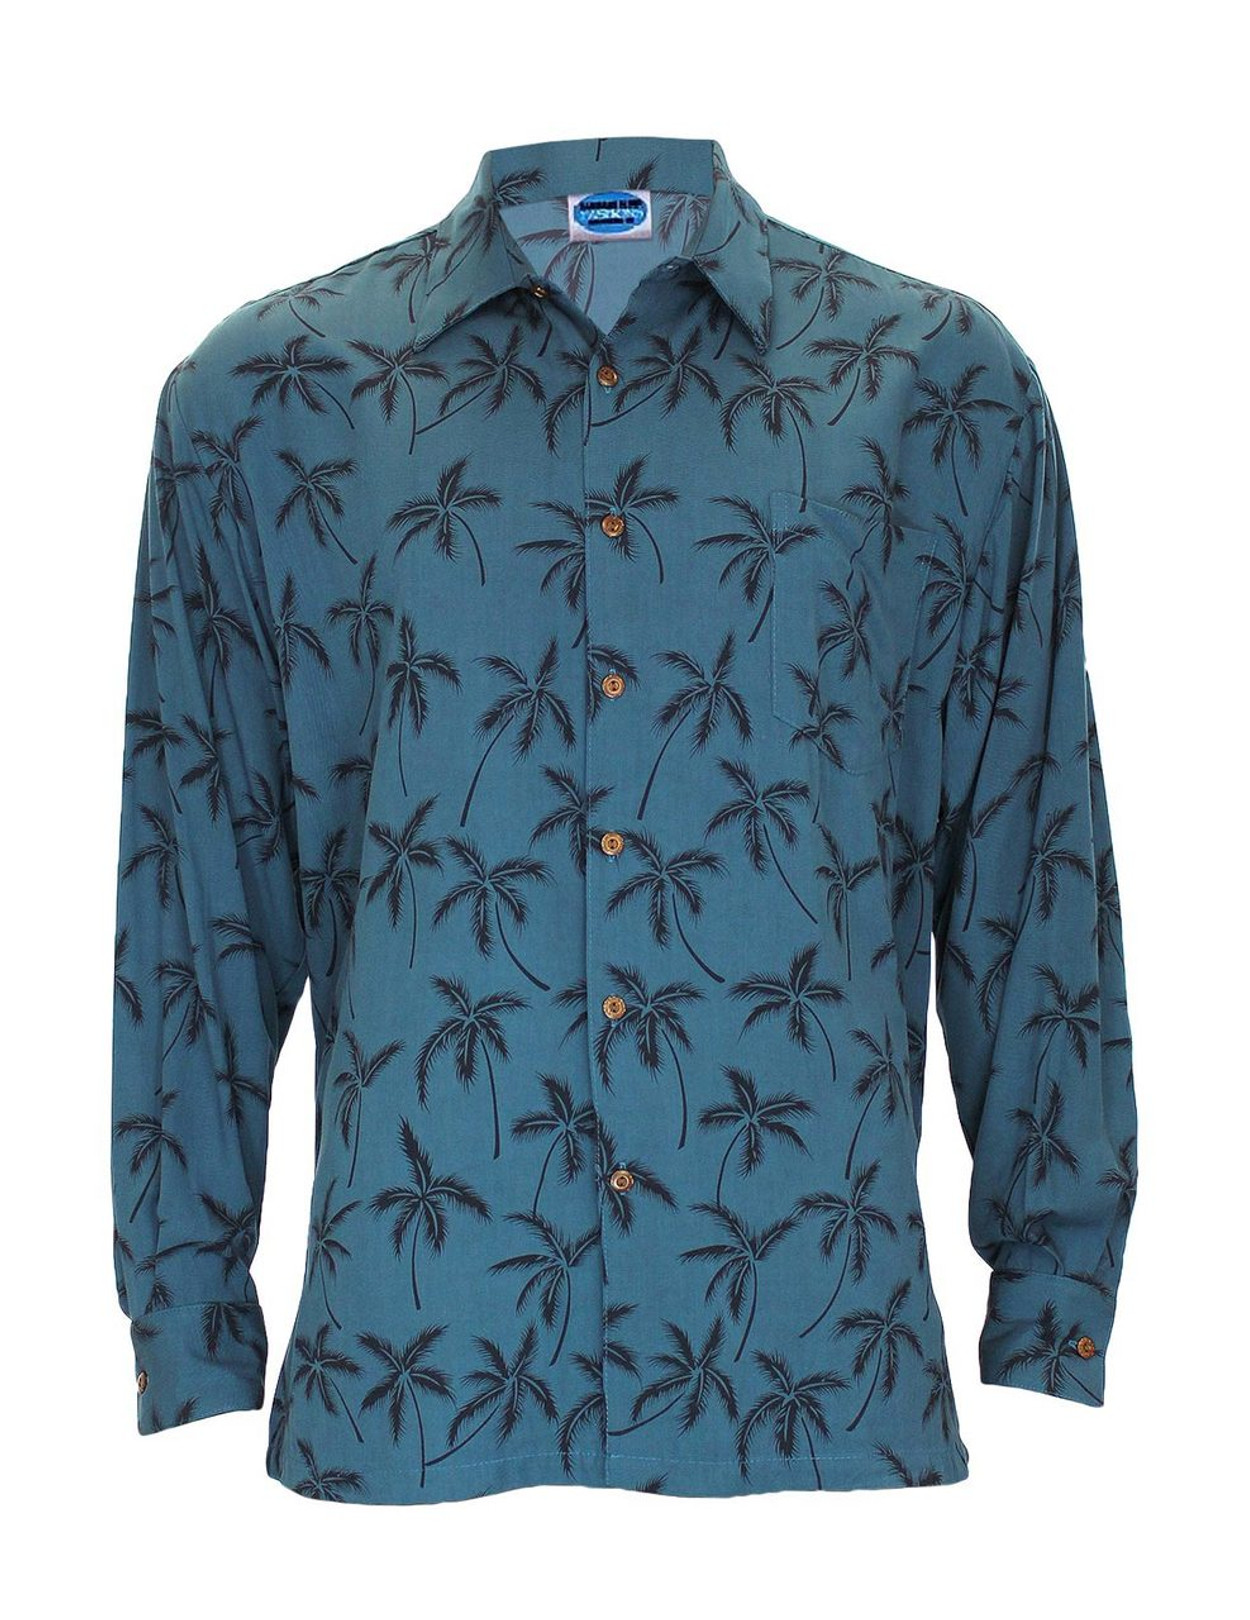 6ba650f77a Teal Blue Rayon Long Sleeves Tropical Palms Aloha Shirt - Hawaiian Gala  Design